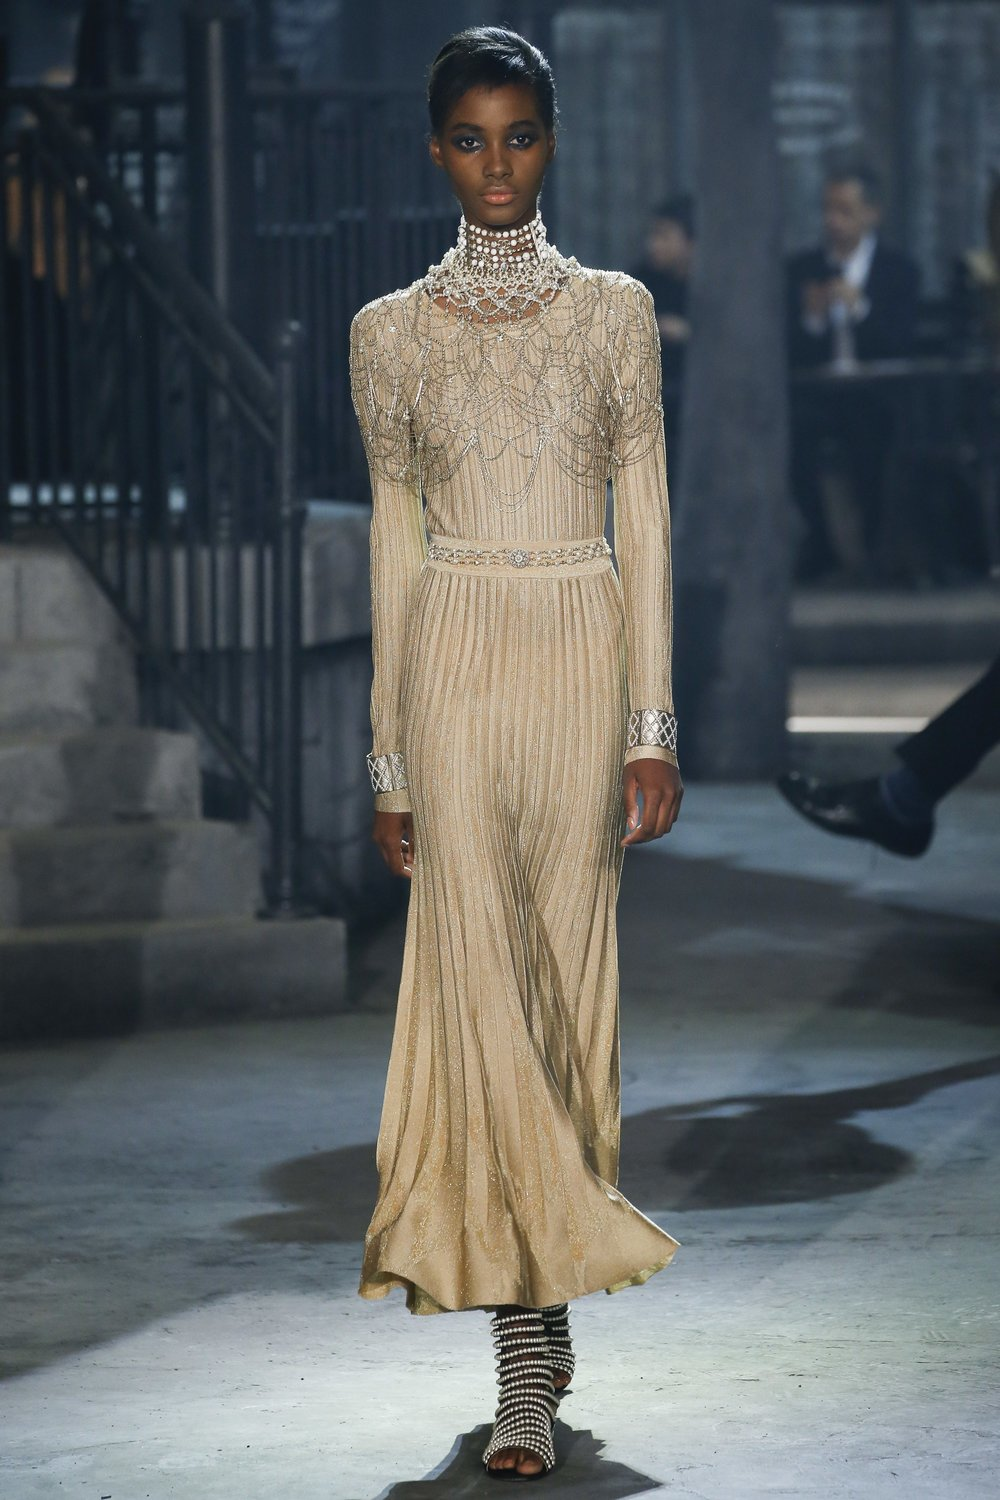 A model on the runway wearing a beautiful Chanel dress.